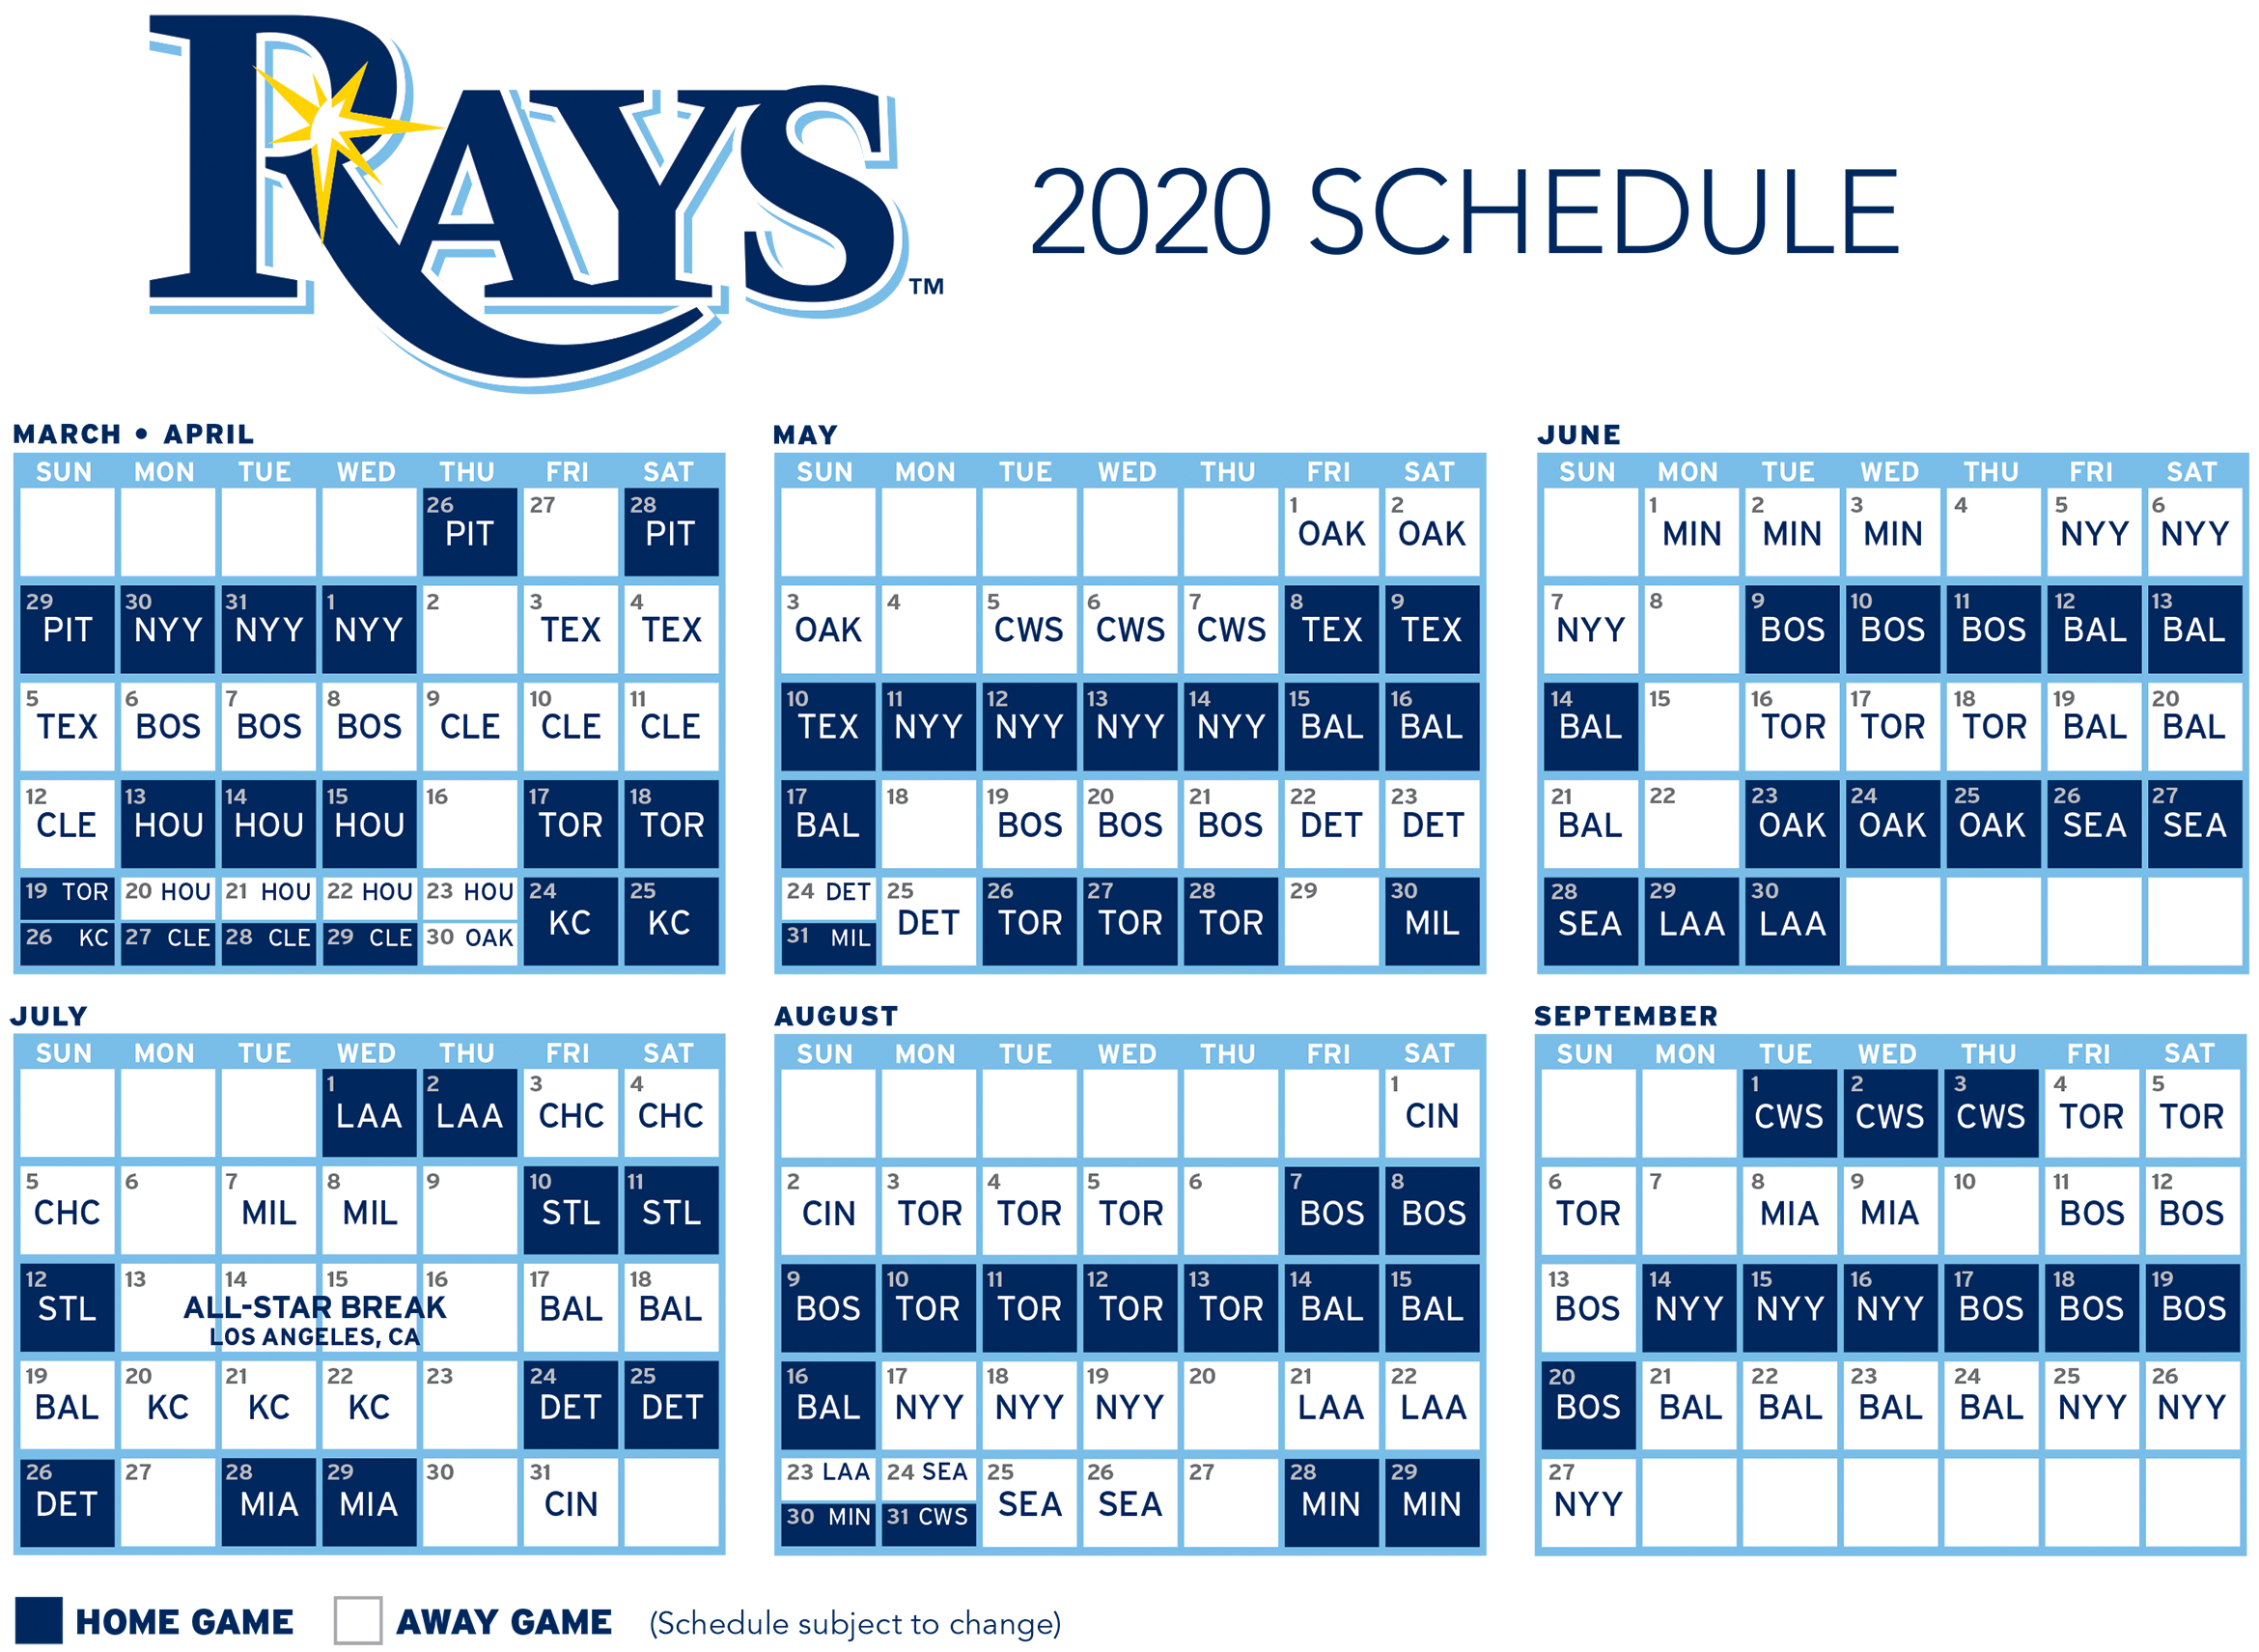 Download the 20209 Tampa Bay Rays Schedule